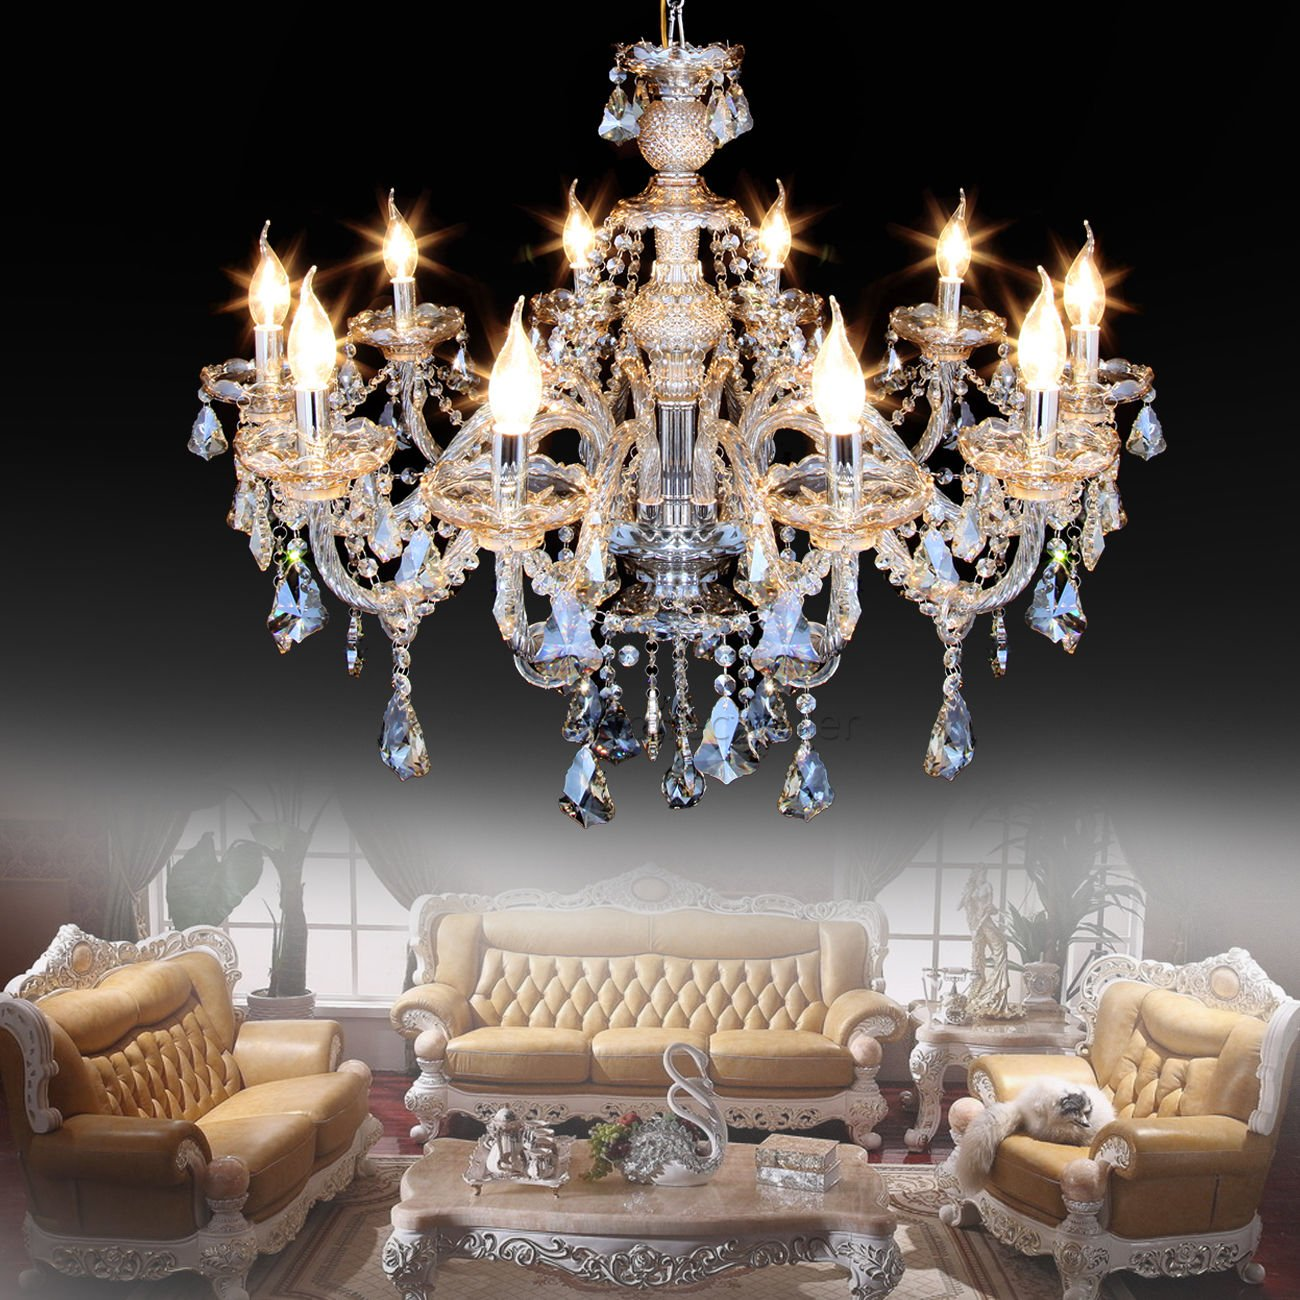 Ridgeyard 10 Lights Modern Luxurious K9 Crystal Chandelier Candle Cognac Pendant Lamp Ceiling Living Room Lighting For Dining Bedroom Hallway